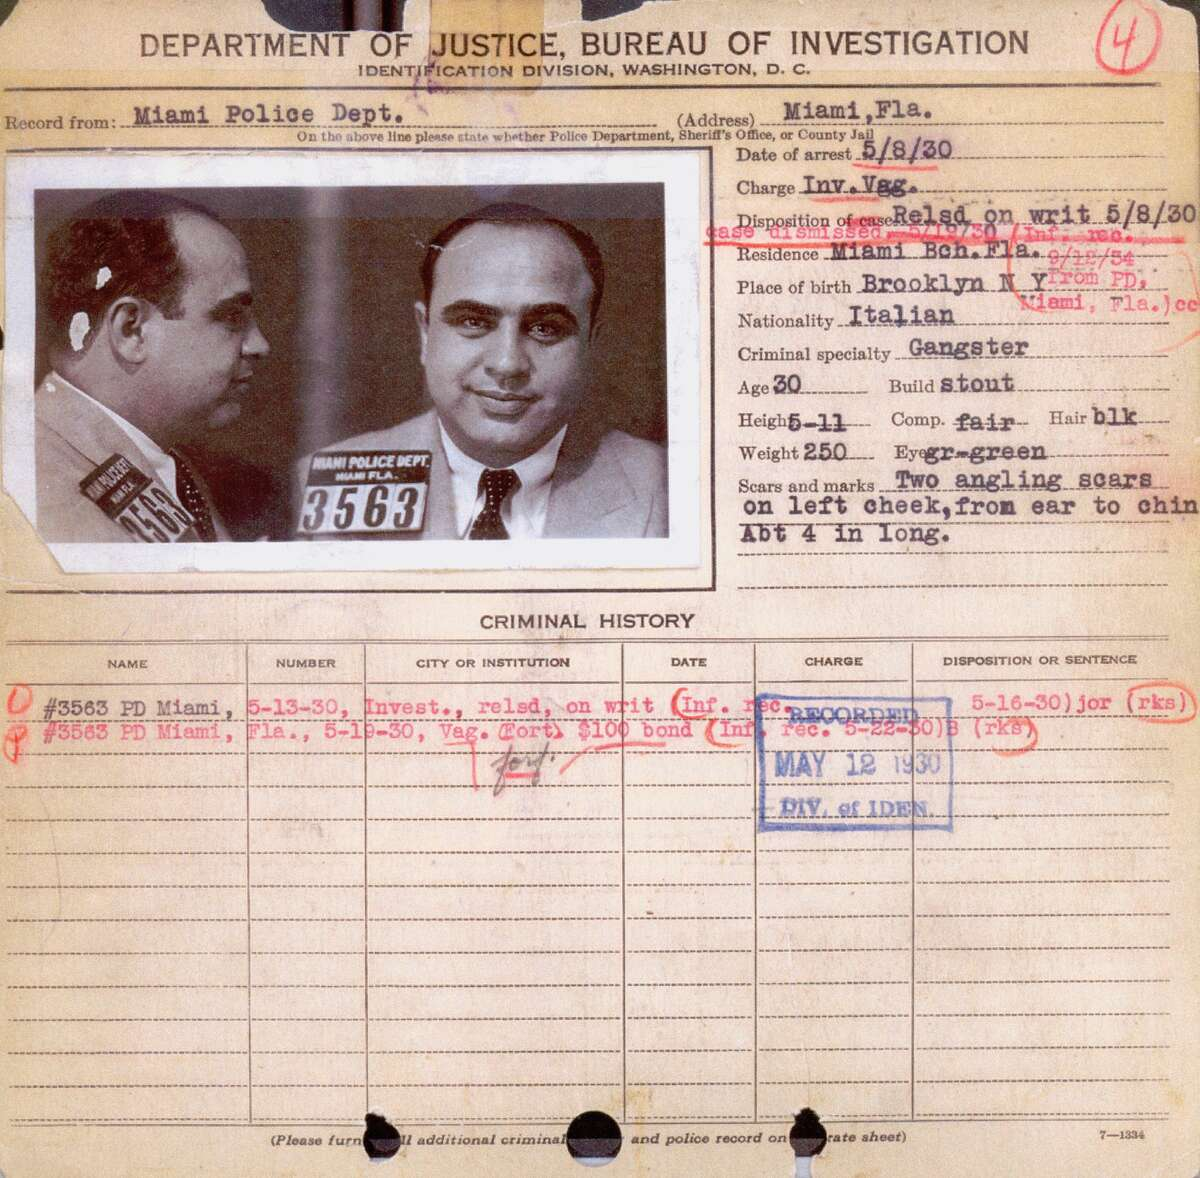 Al Capone Arrest Record Arrest record for Al Capone, received from Miami Police Department on May 12, 1930.